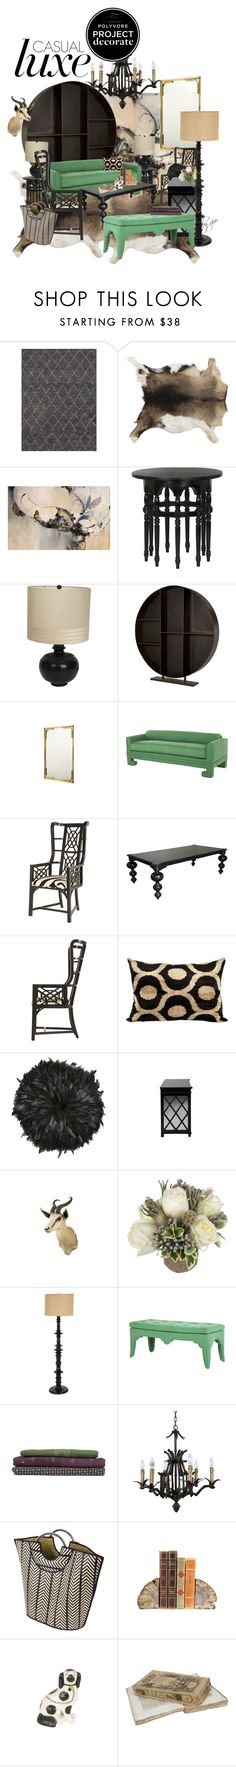 grantham... by ian-giw on Polyvore featuring interior, interiors, interior design, home, home decor, interior decorating, Jayson Home, ProjectDecorate and casualluxe